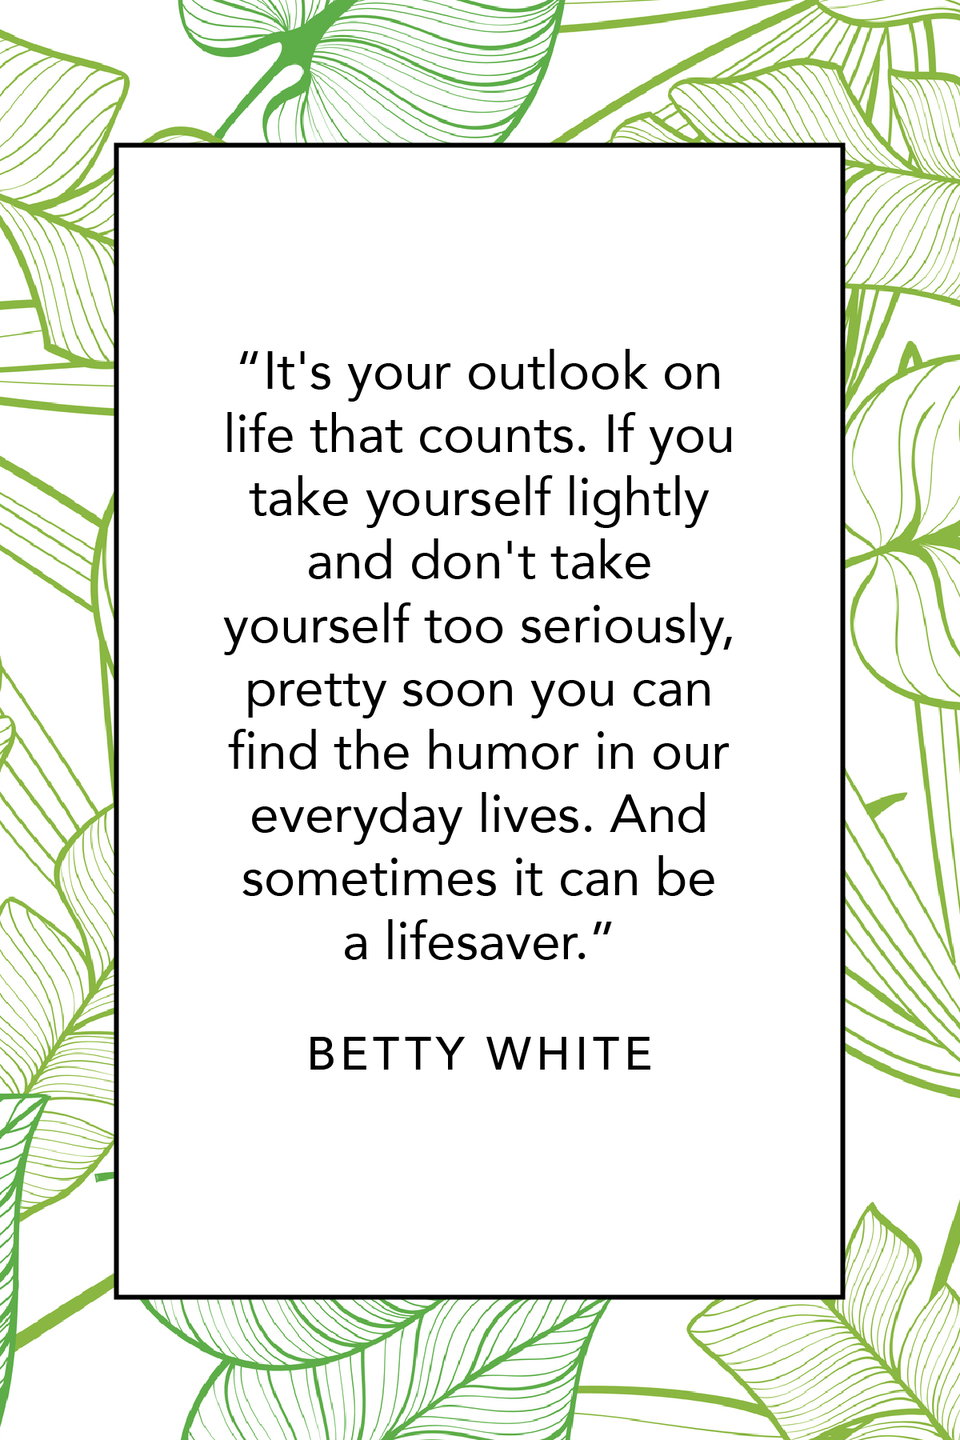 """<p>Betty White shared some advice on finding the humor in your life (even if you think you're not funny) in a 2011 interview with the <em><a href=""""https://www.chicagotribune.com/news/ct-xpm-2011-05-04-ct-live-0505-betty-white-interview-20110504-story.html"""" rel=""""nofollow noopener"""" target=""""_blank"""" data-ylk=""""slk:Chicago Tribune"""" class=""""link rapid-noclick-resp"""">Chicago Tribune</a></em>. She said, """"It's your outlook on life that counts. If you take yourself lightly and don't take yourself too seriously, pretty soon you can find the humor in our everyday lives. And sometimes it can be a lifesaver.""""</p>"""